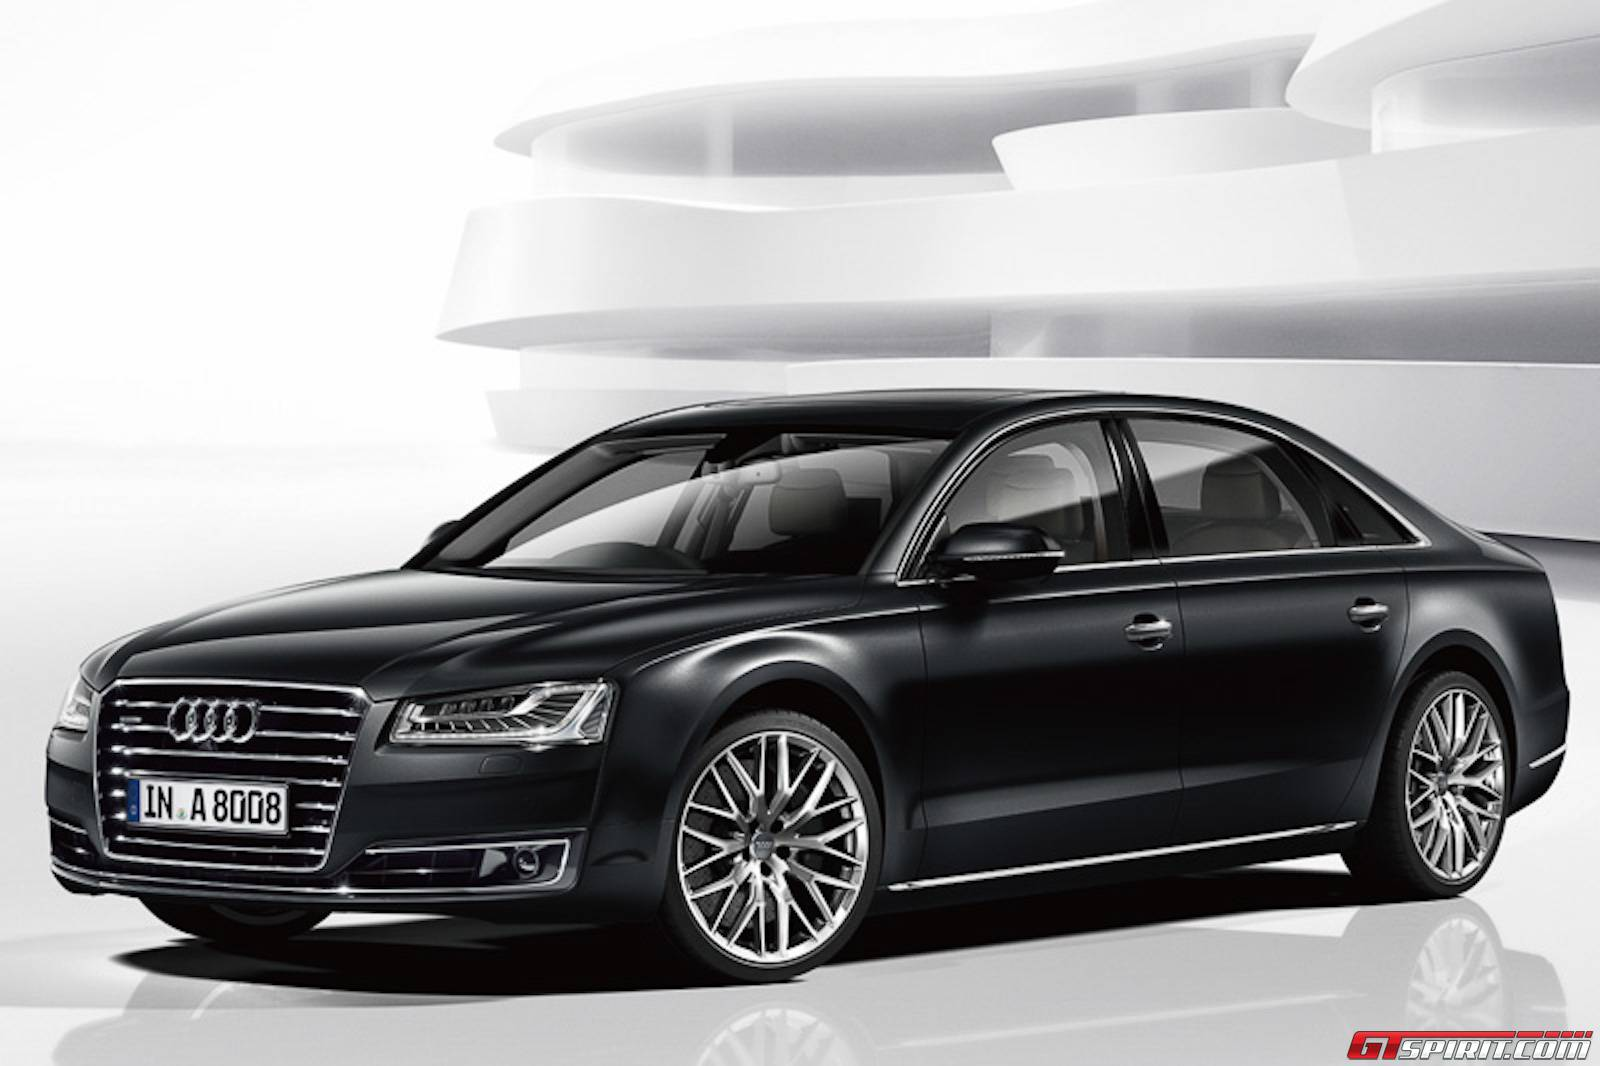 two new audi a8 editions launched in japan gtspirit. Black Bedroom Furniture Sets. Home Design Ideas